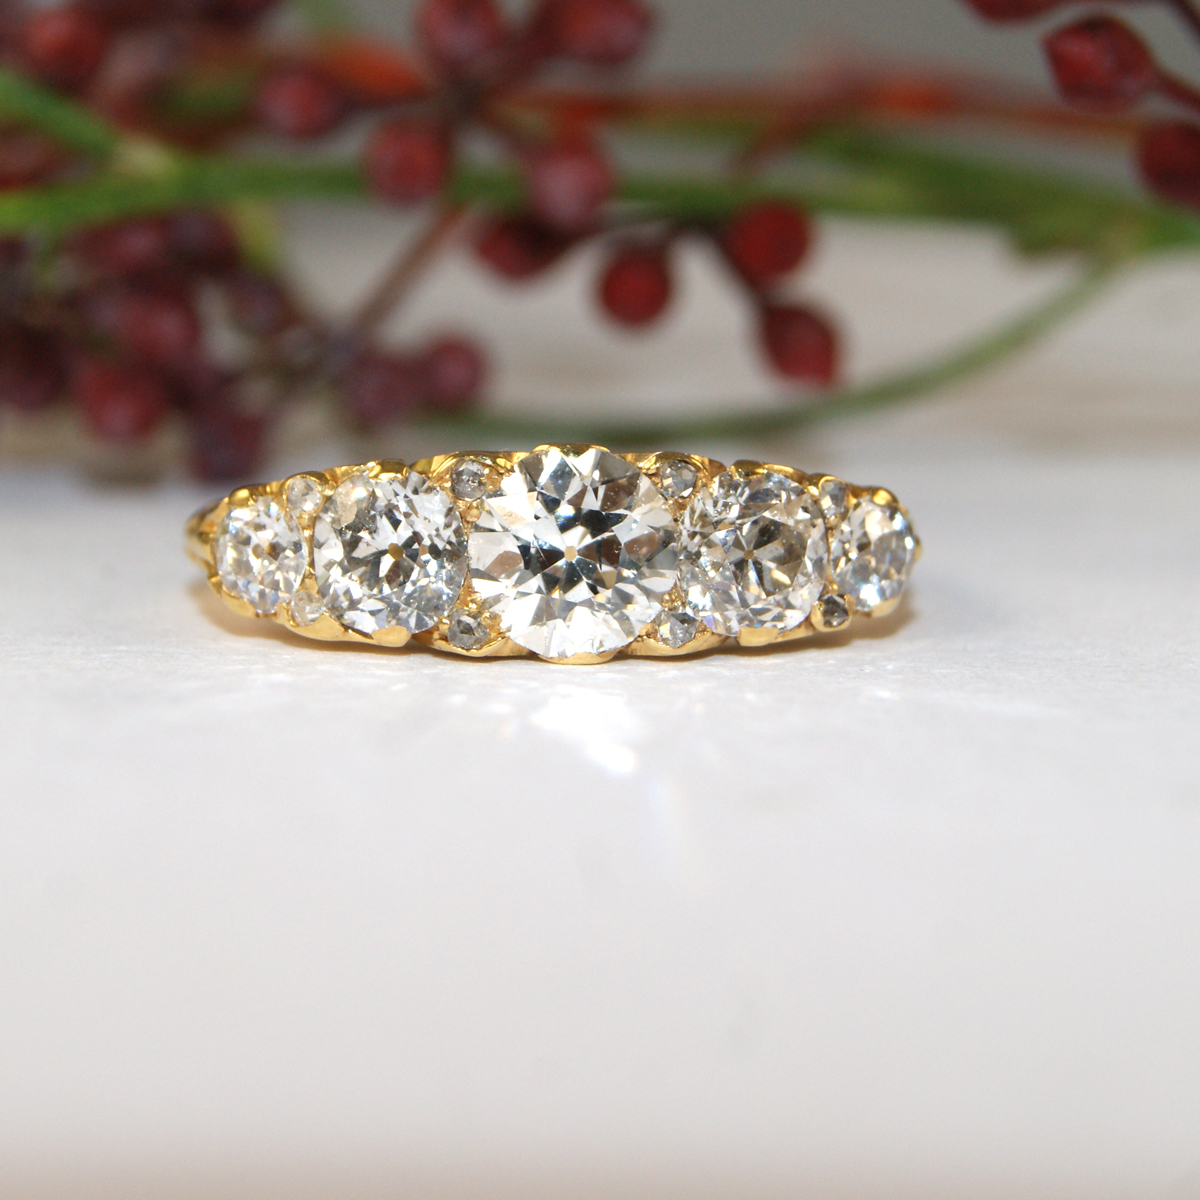 jewelry diamond band wedding gold lovely stone engagement ladies white amazon dp ring com real rings